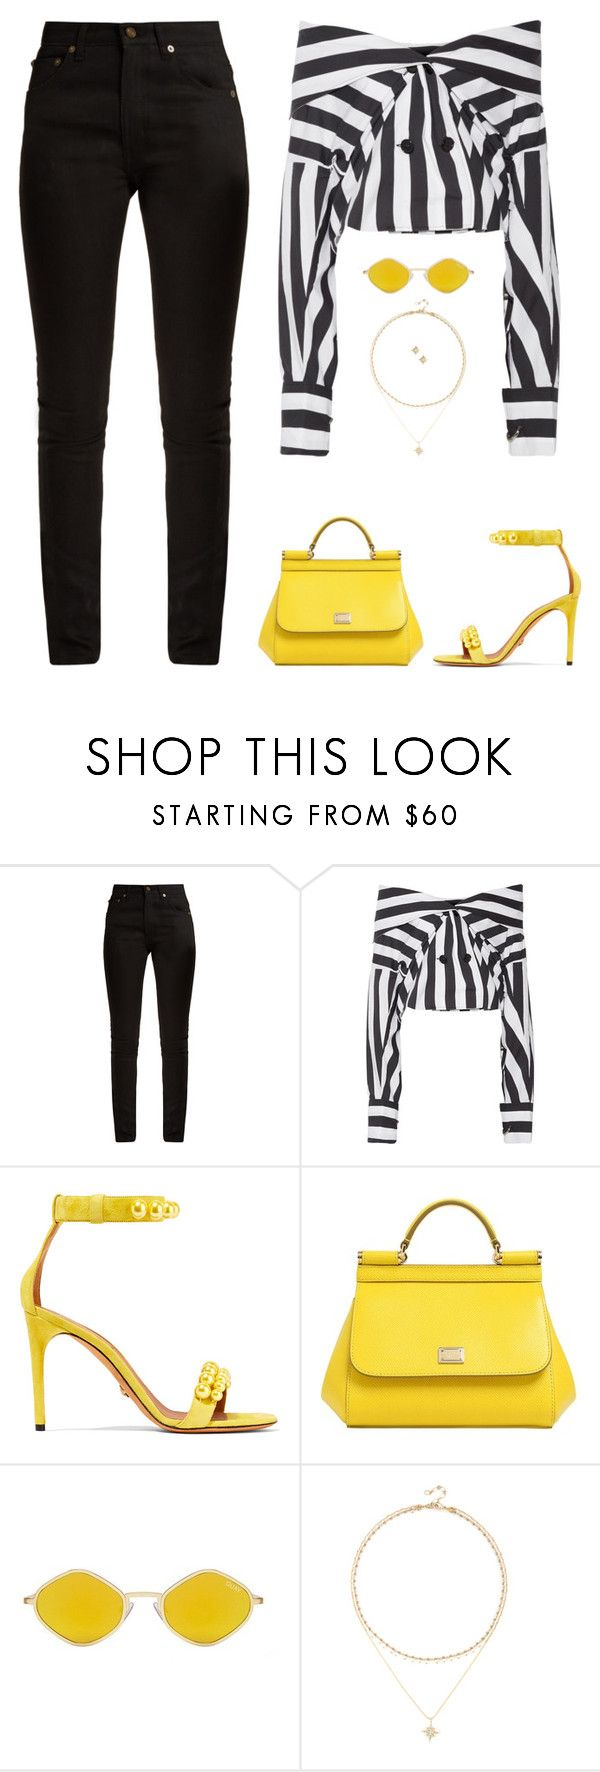 """""""Untitled #5052"""" by mdmsb on Polyvore featuring Yves Saint Laurent, Marques'Almeida, Givenchy, Dolce&Gabbana, Quay and Sole Society"""